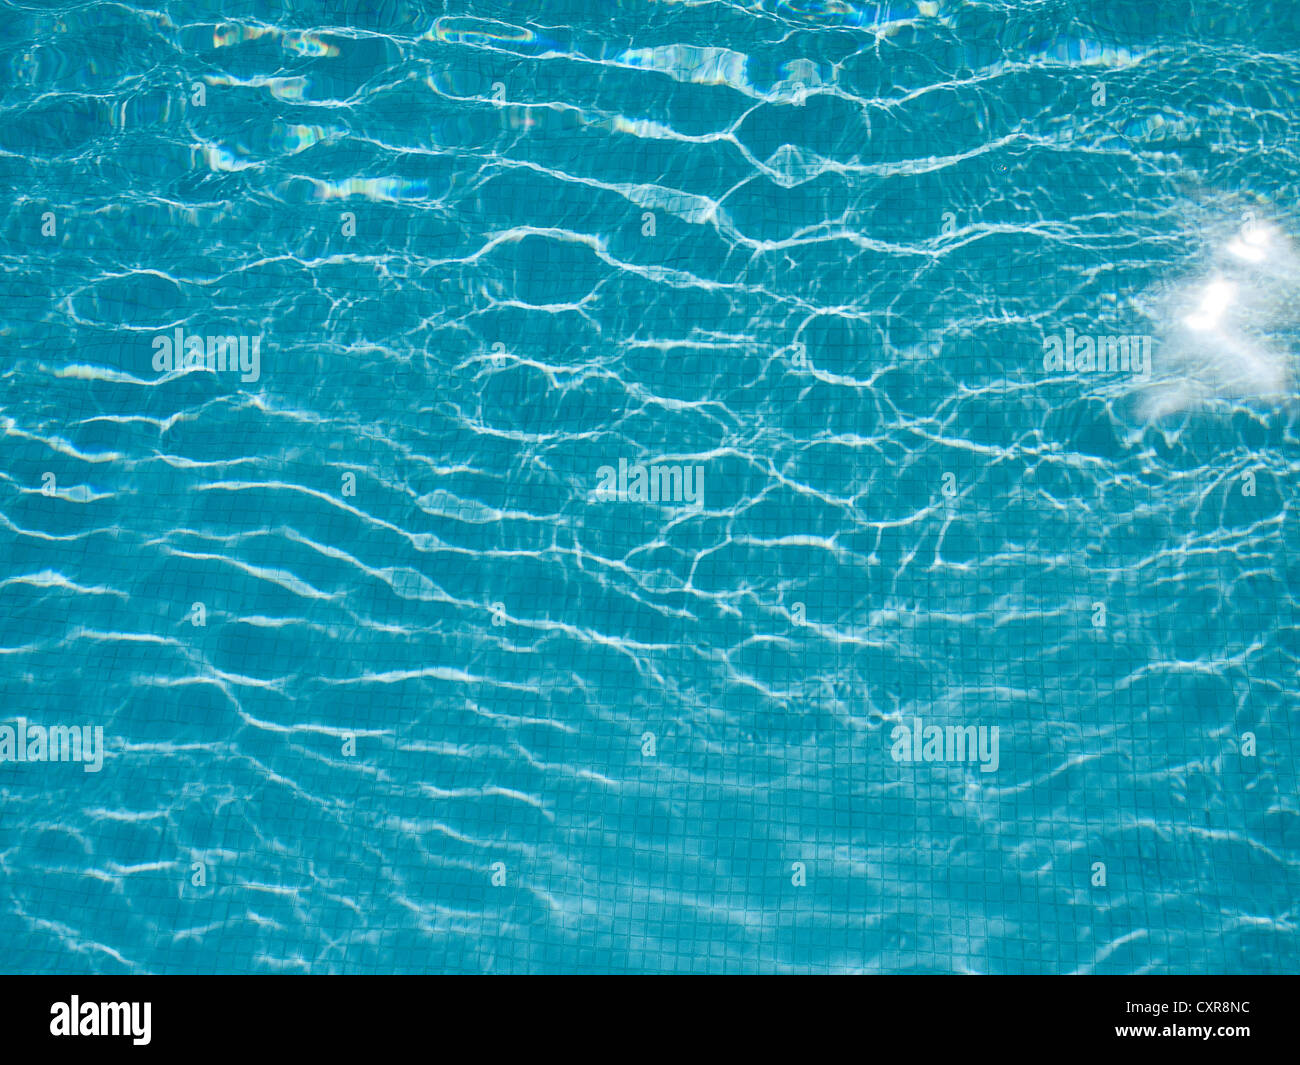 LIGHT REFLECTING ON RIPPLES AND ON WATER IN SWIMMING POOL. Stock Photo